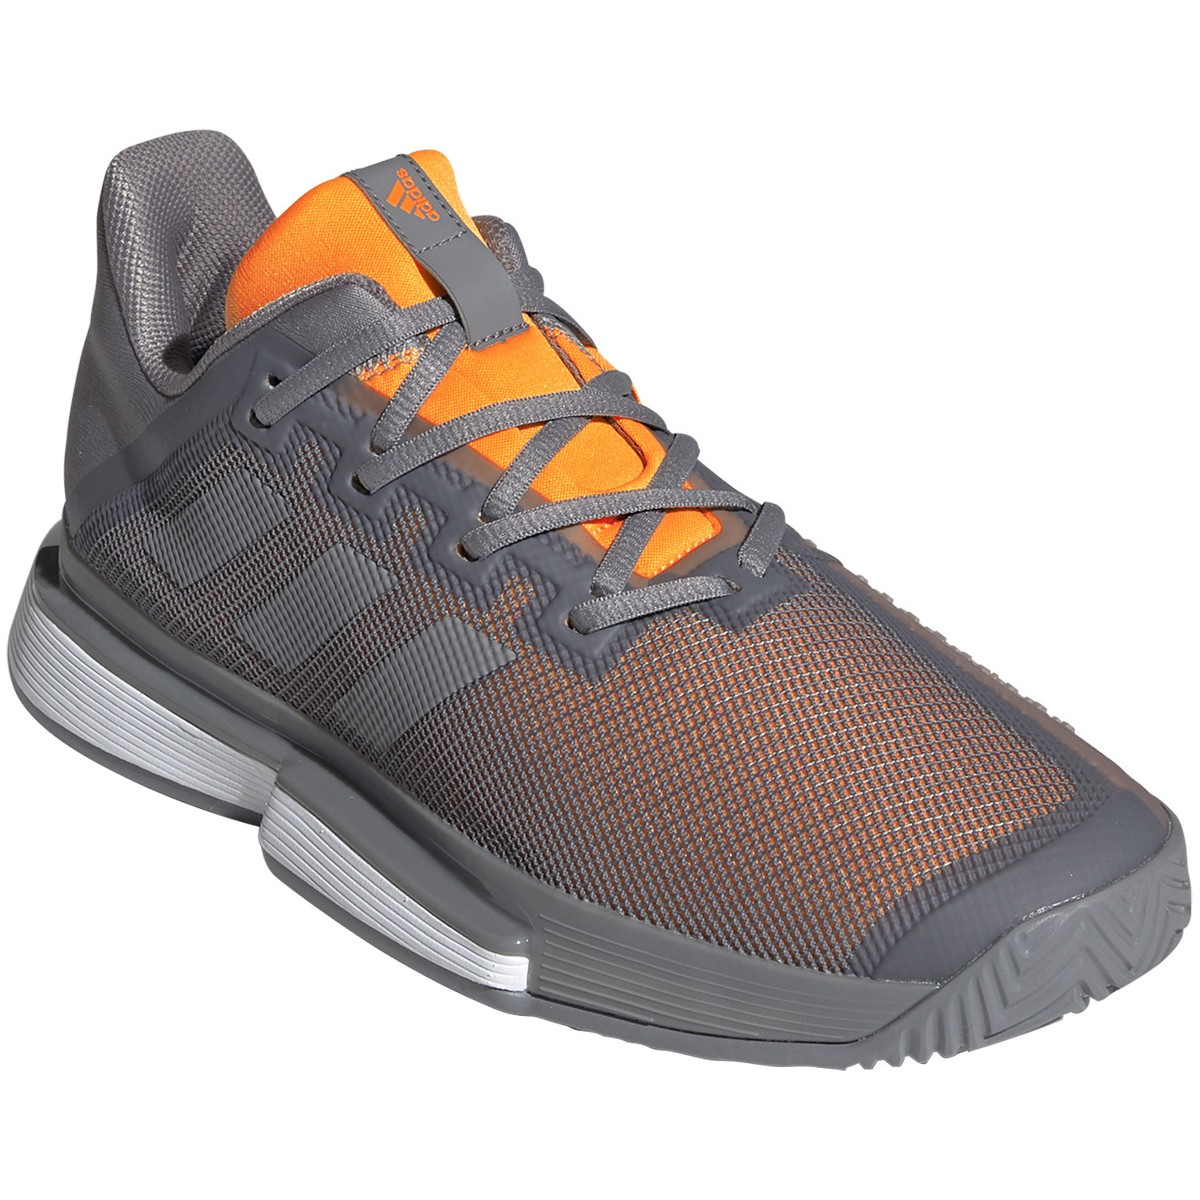 CHAUSSURES ADIDAS SOLEMATCH BOUNCE TOUTES SURFACES ADIDAS